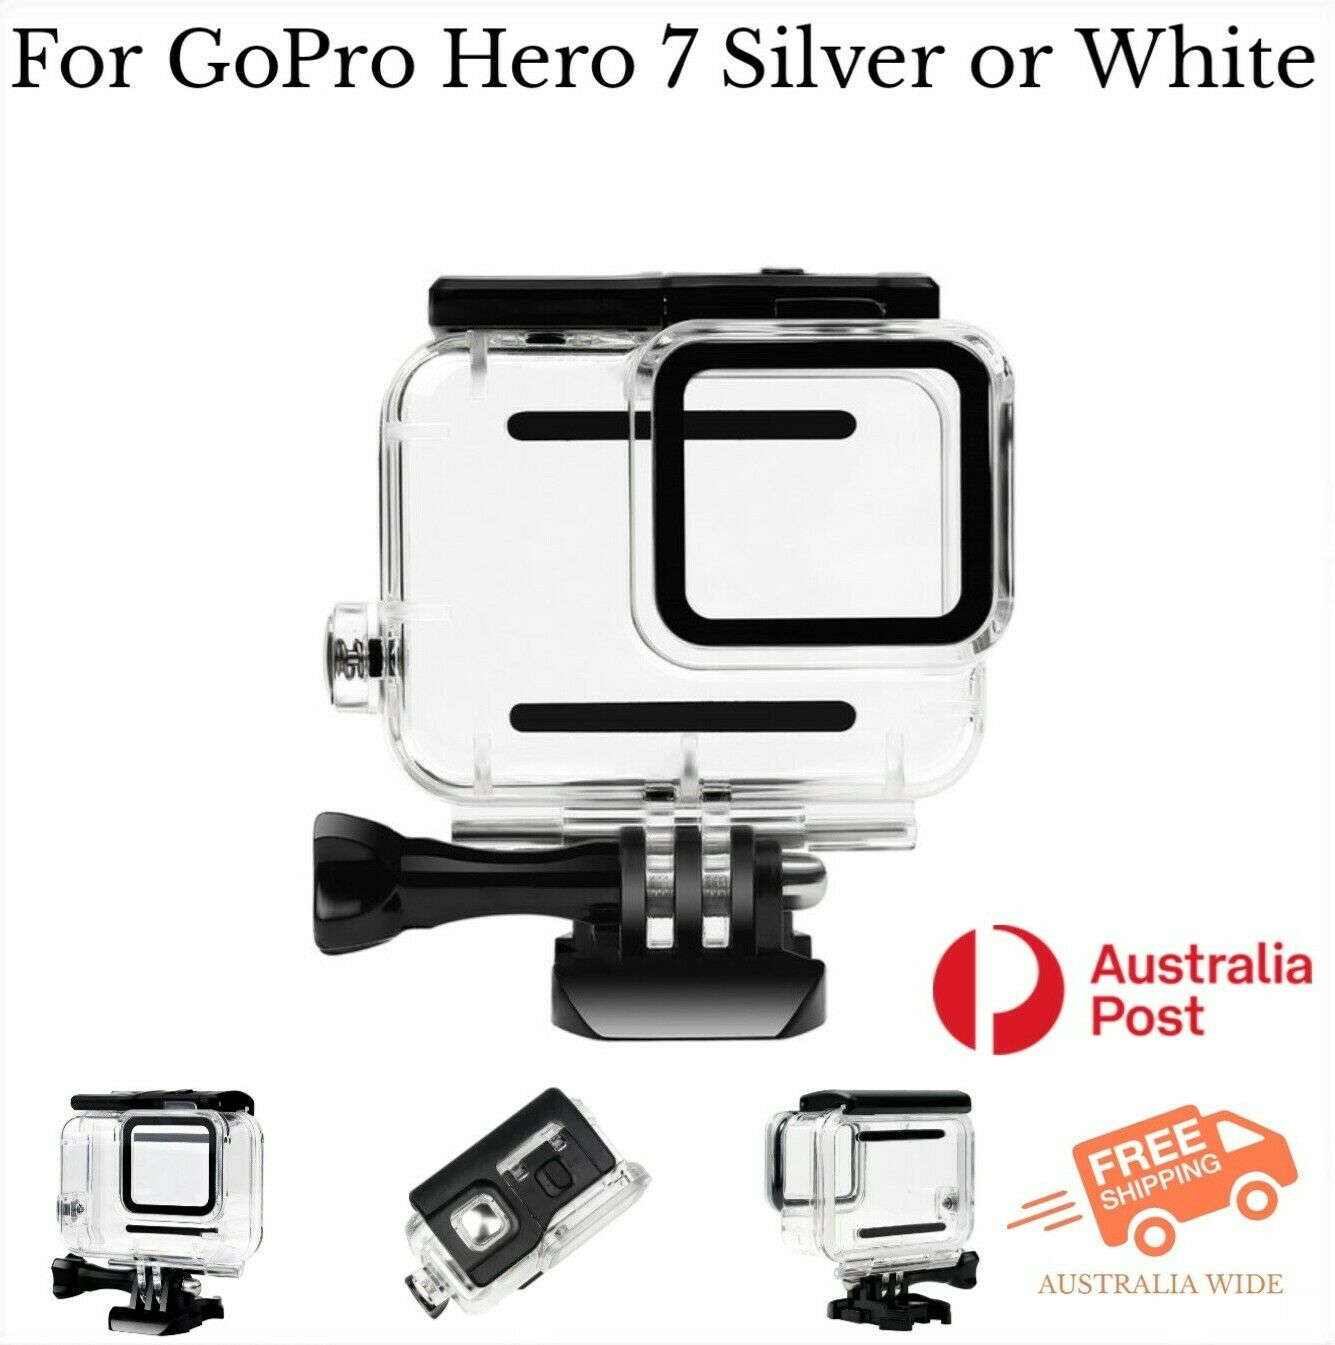 Waterproof Housing Case for GoPro Hero 7 Silver & White Tested to 45m AU Stock